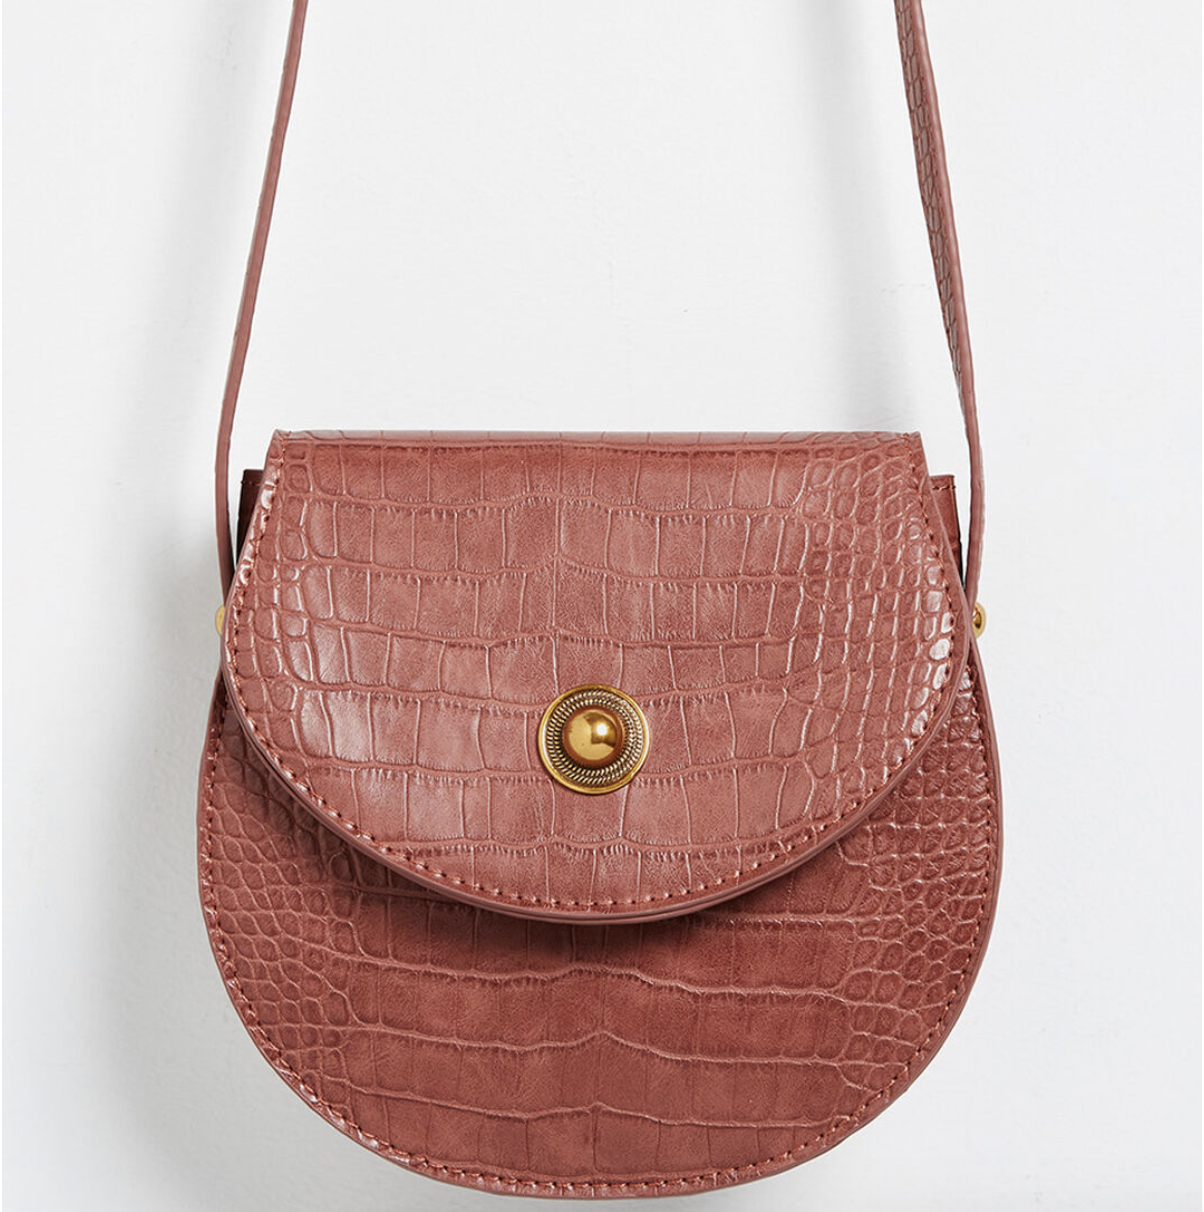 A demi-circle shaped crossbody bag with a magnetic closure on its flap